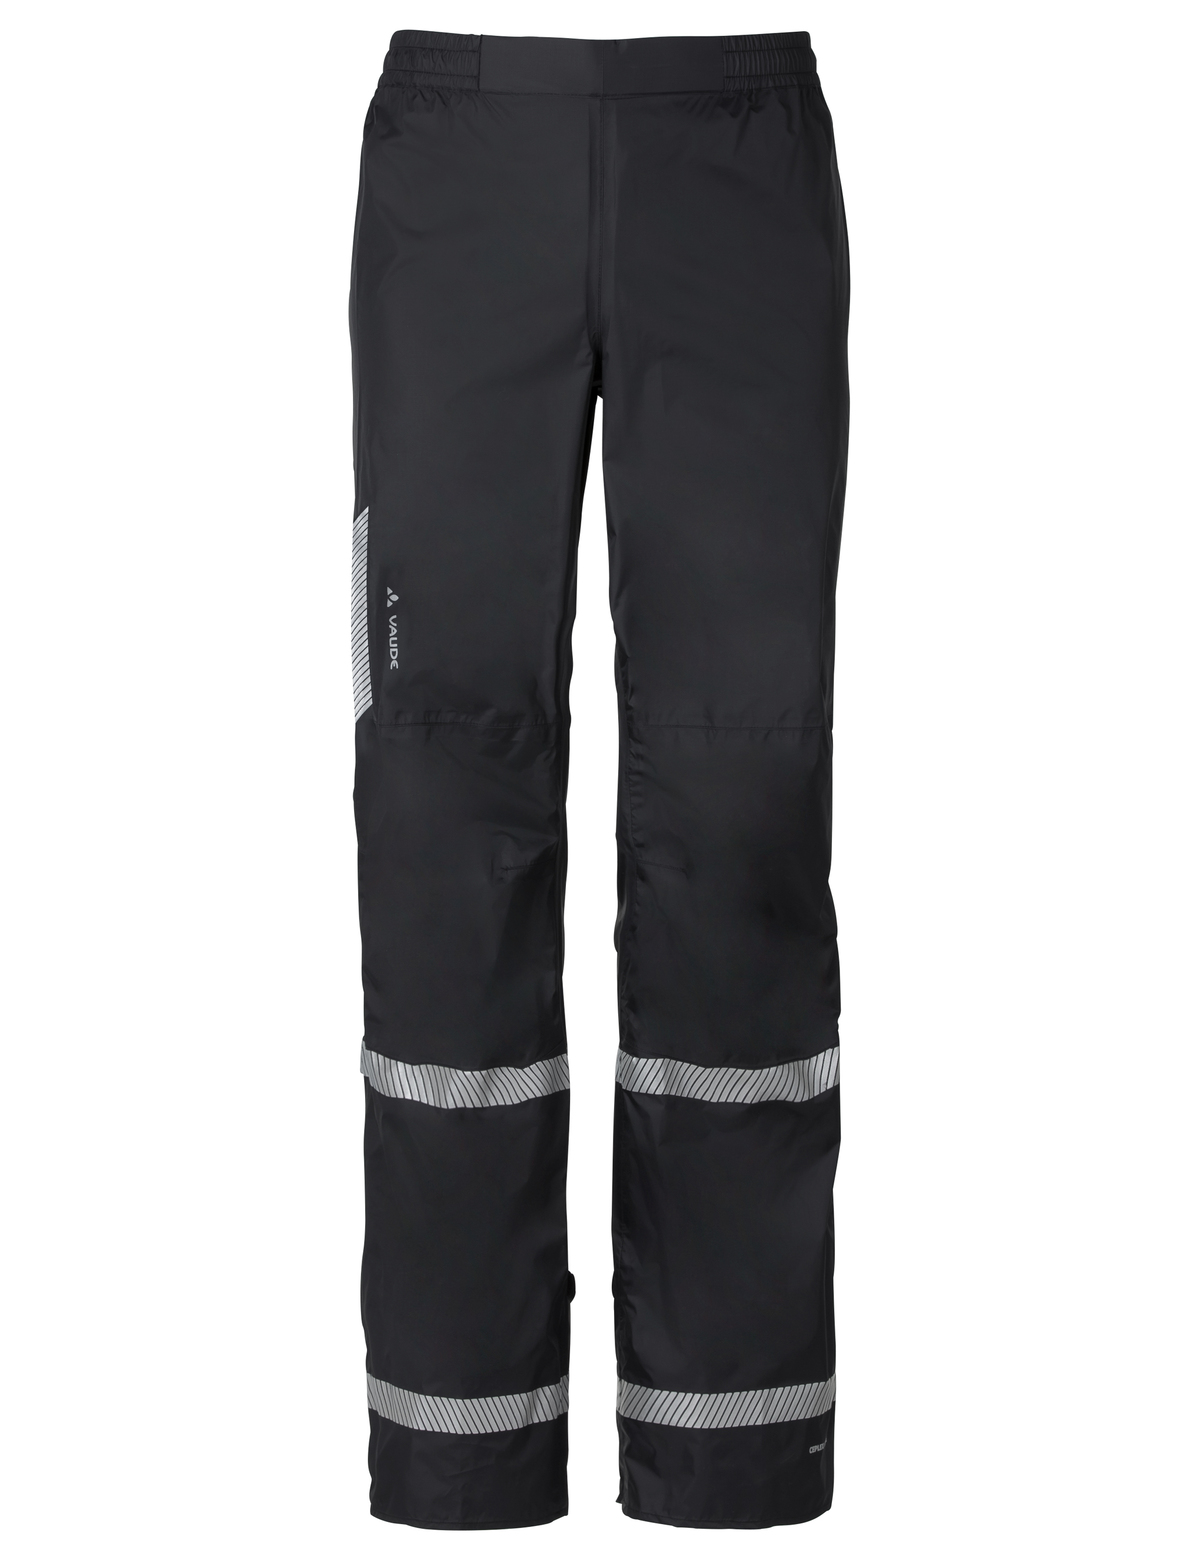 VAUDE Men´s Luminum Performance Pants black Größe M - 2-Rad-Sport Wehrle